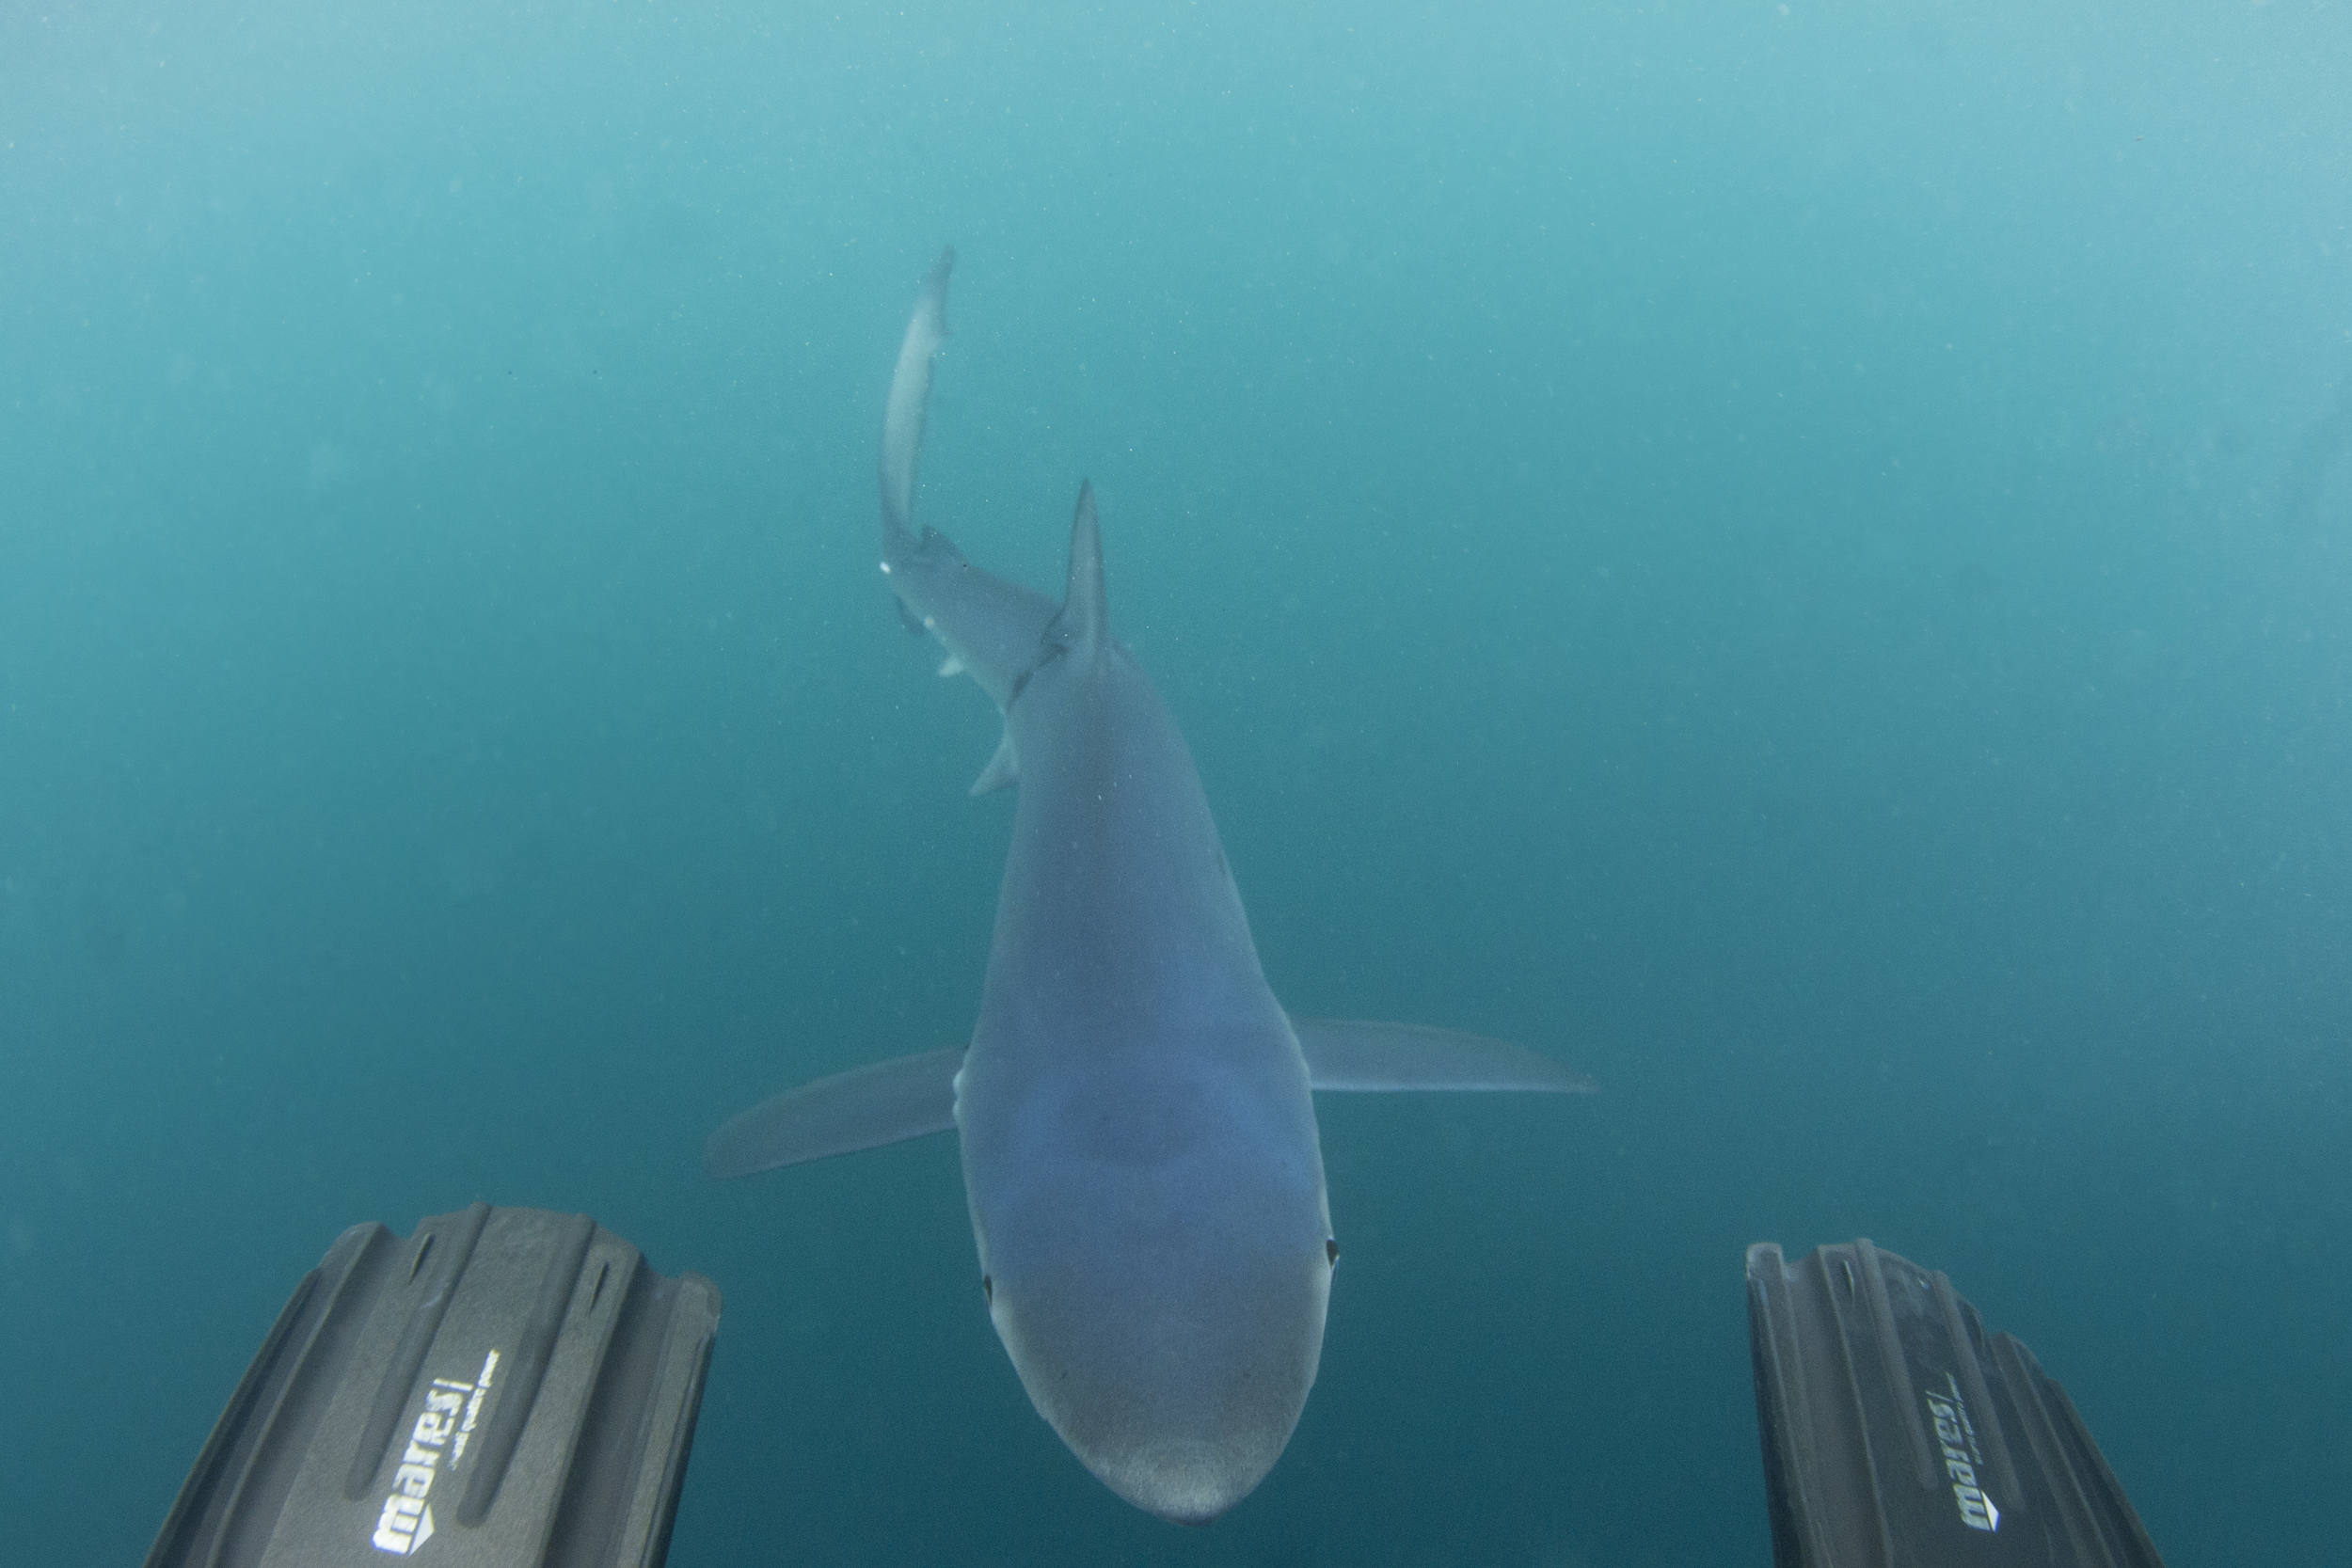 Whatcha looking for down there Mr. Shark?